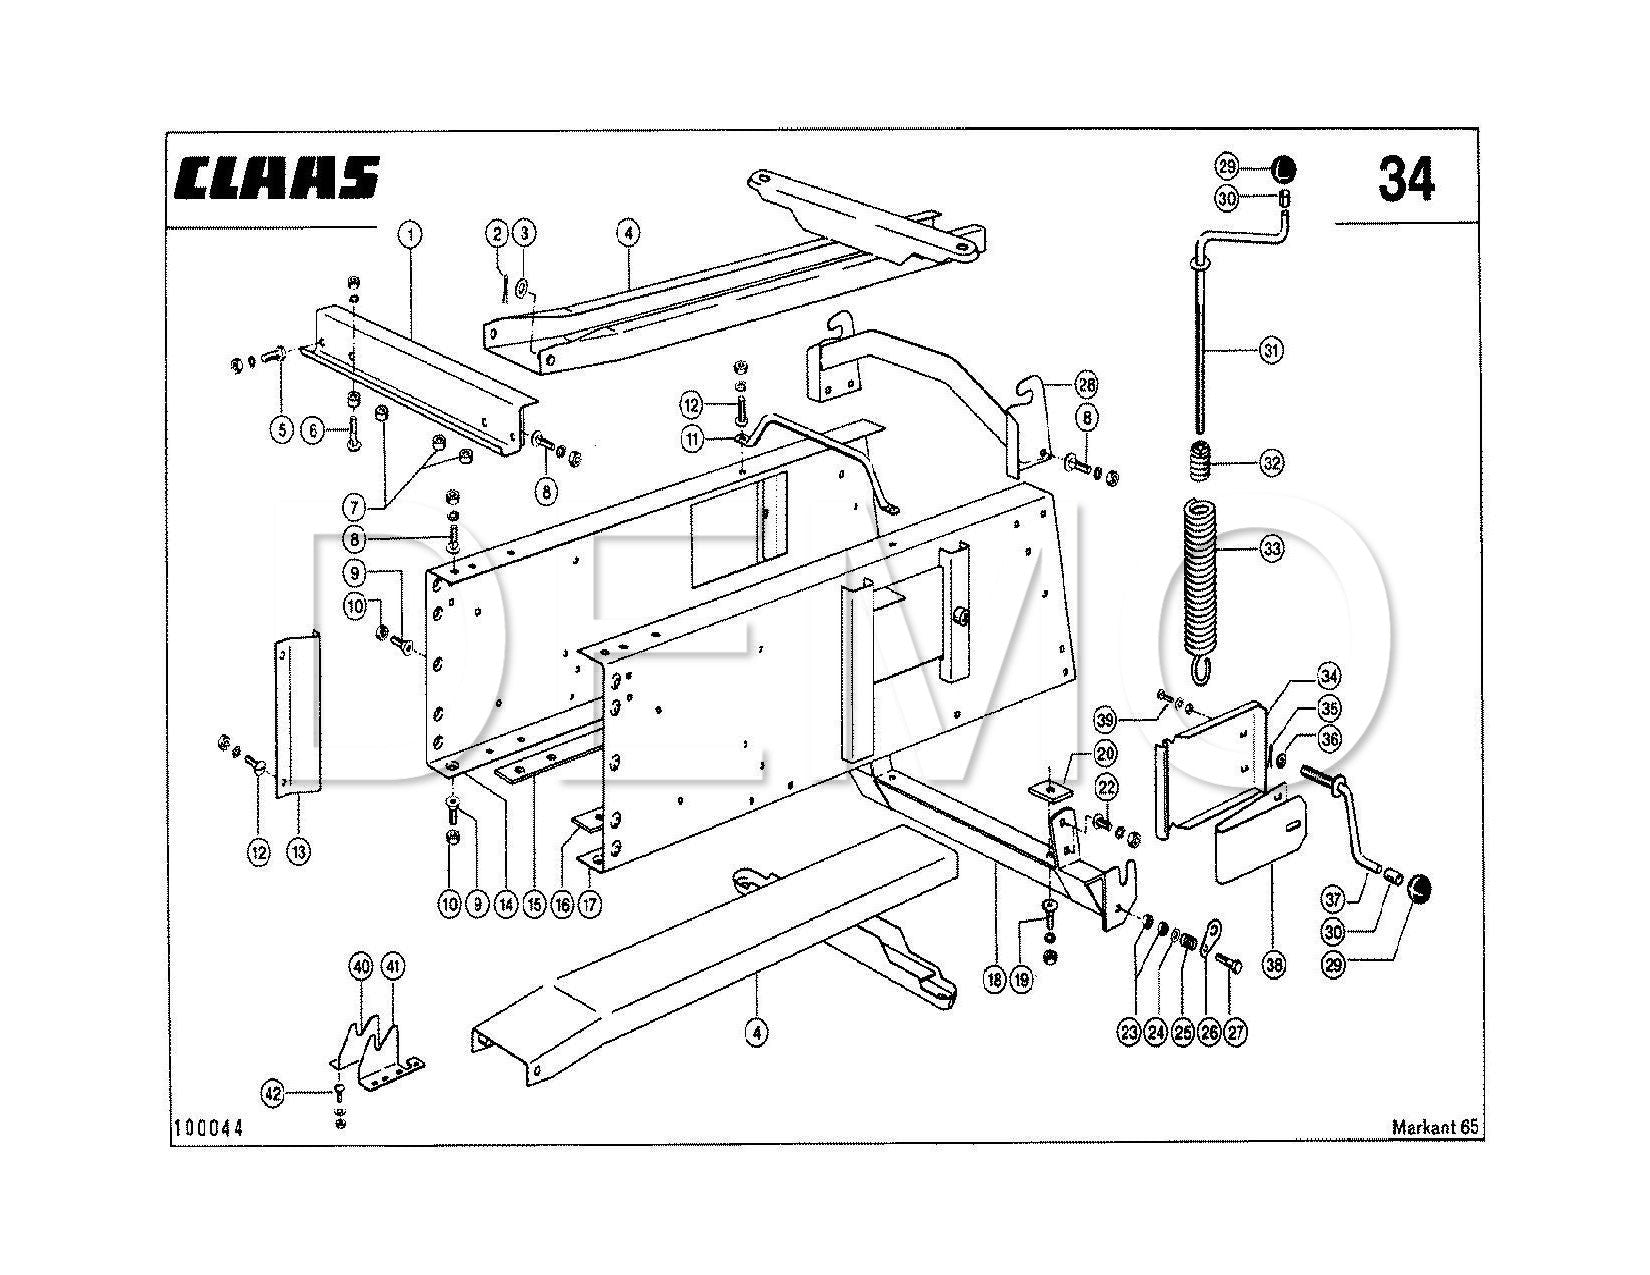 Claas Markant 51 Parts Catalogue, Spares List, Manual PDF